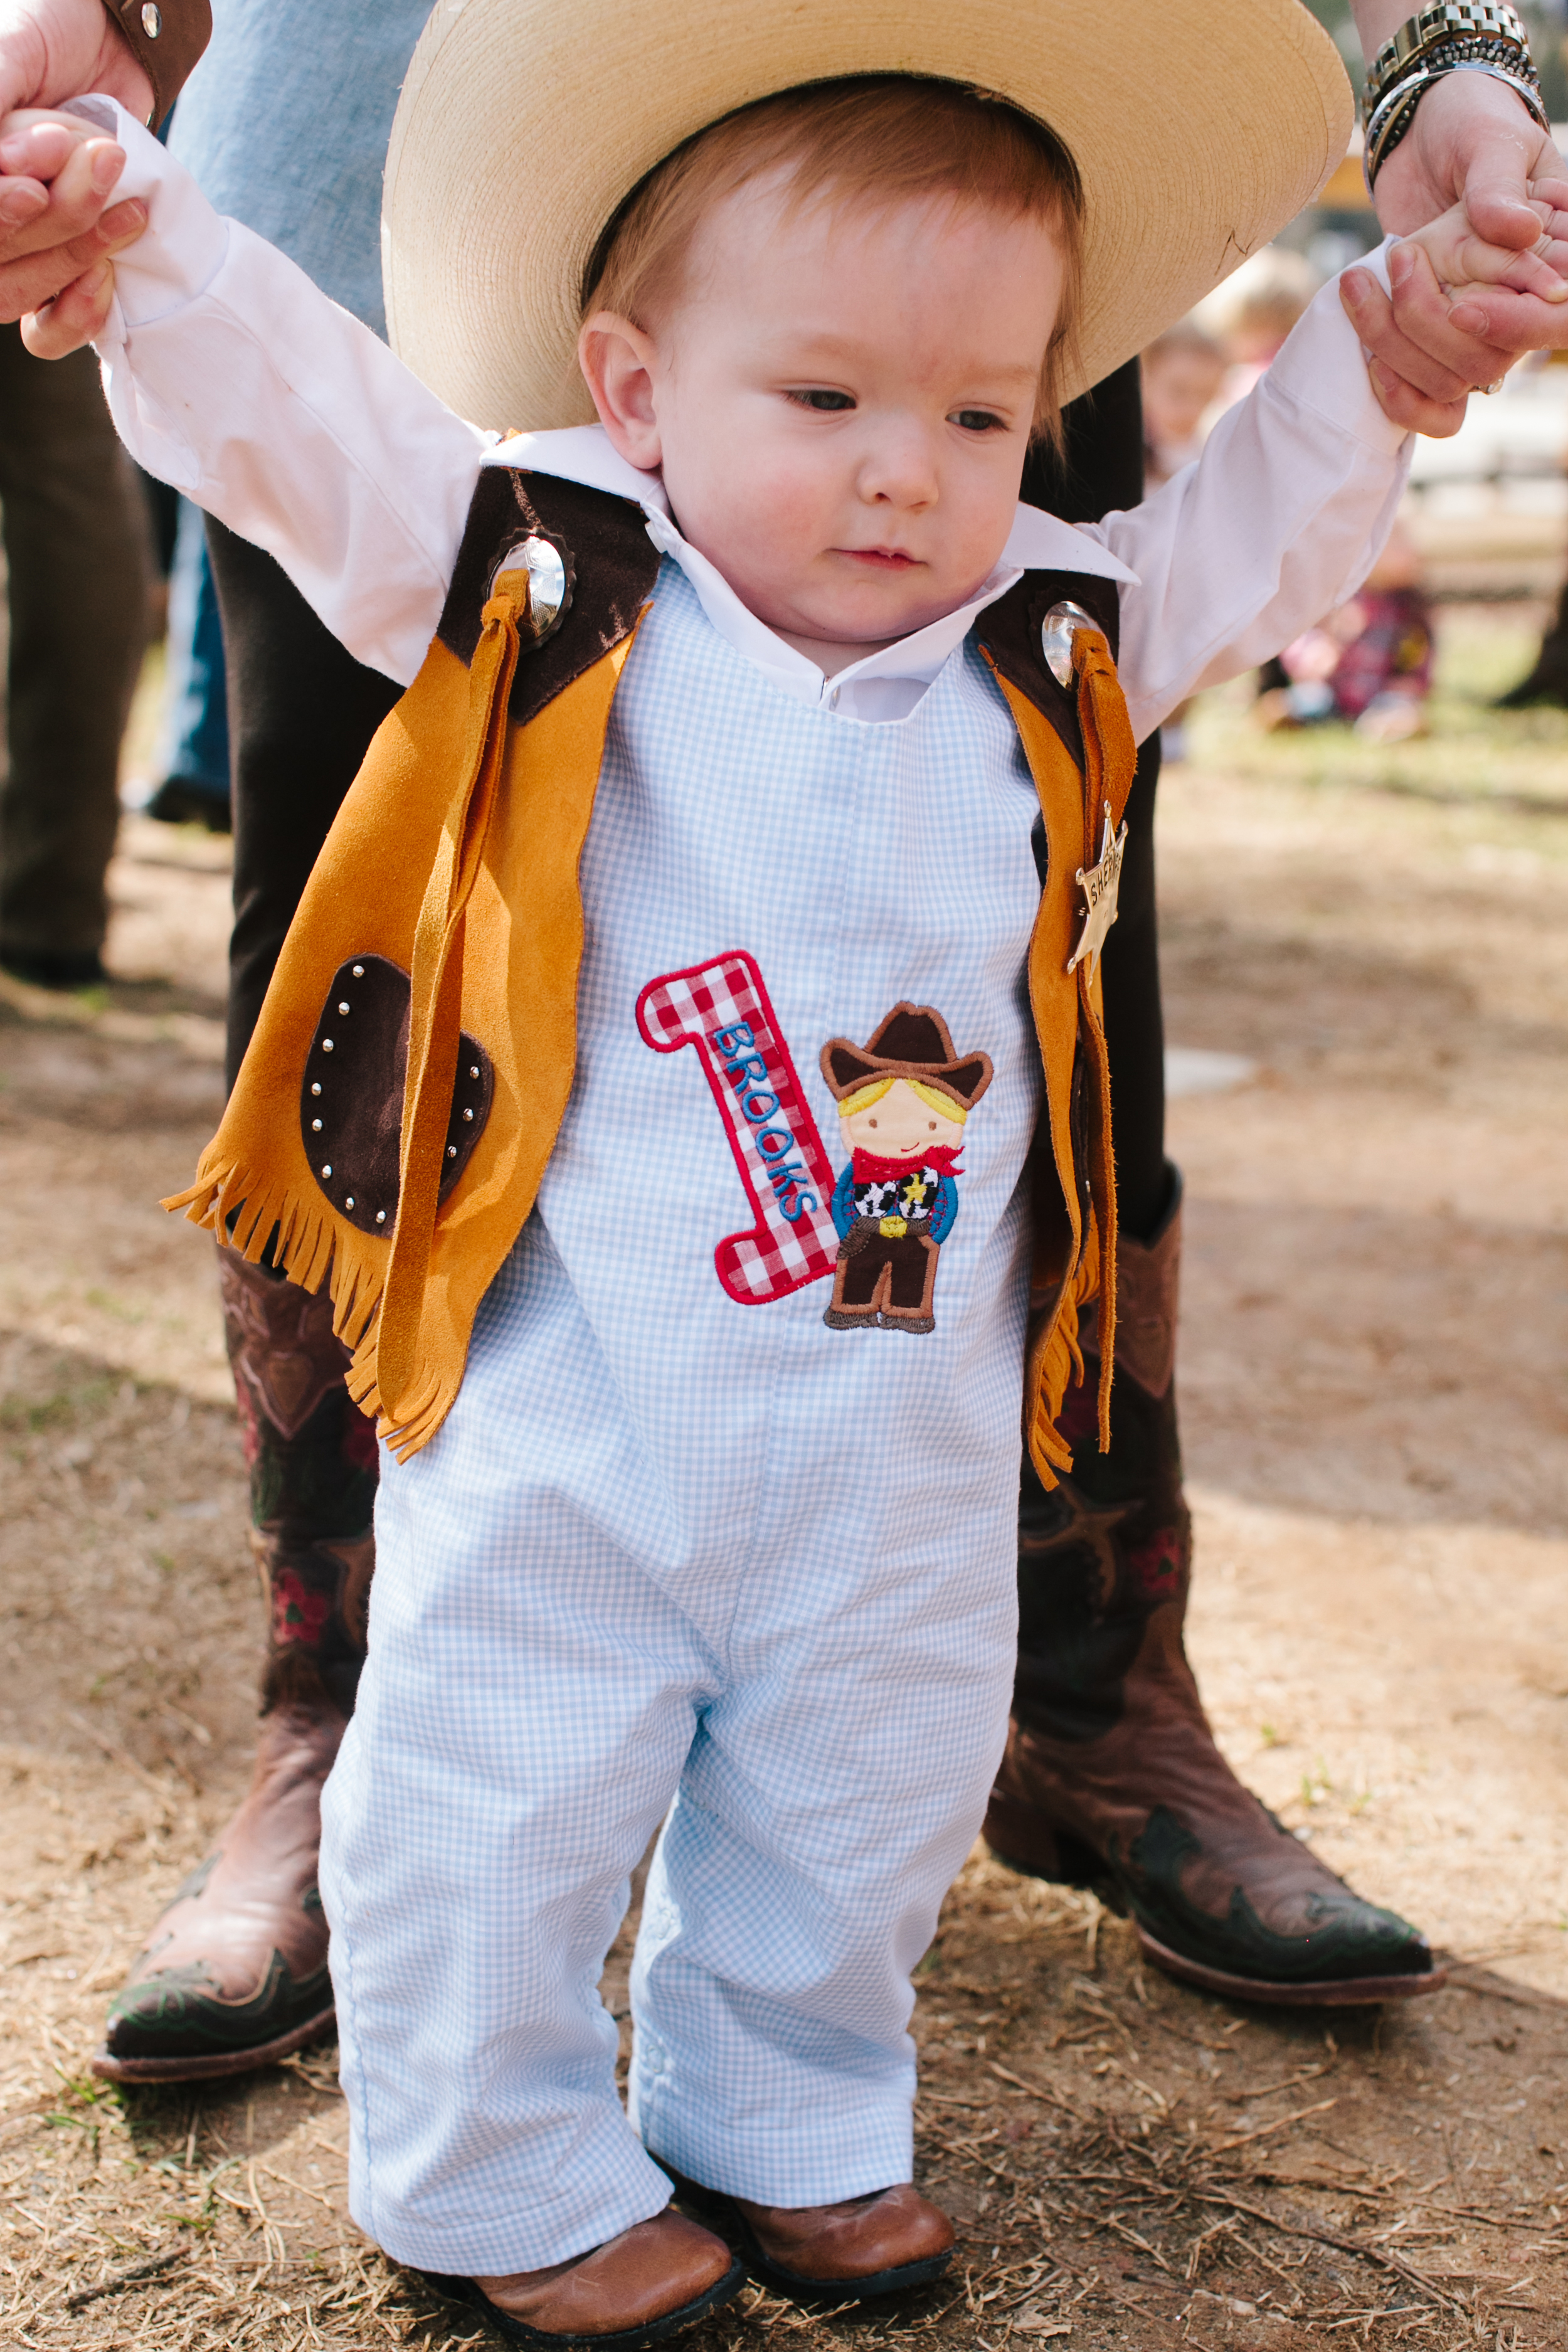 Kathryn-McCrary-Photography-Atlanta-Event-Photographer-Brooks-Birthday-Cowboy-Theme-7.jpg